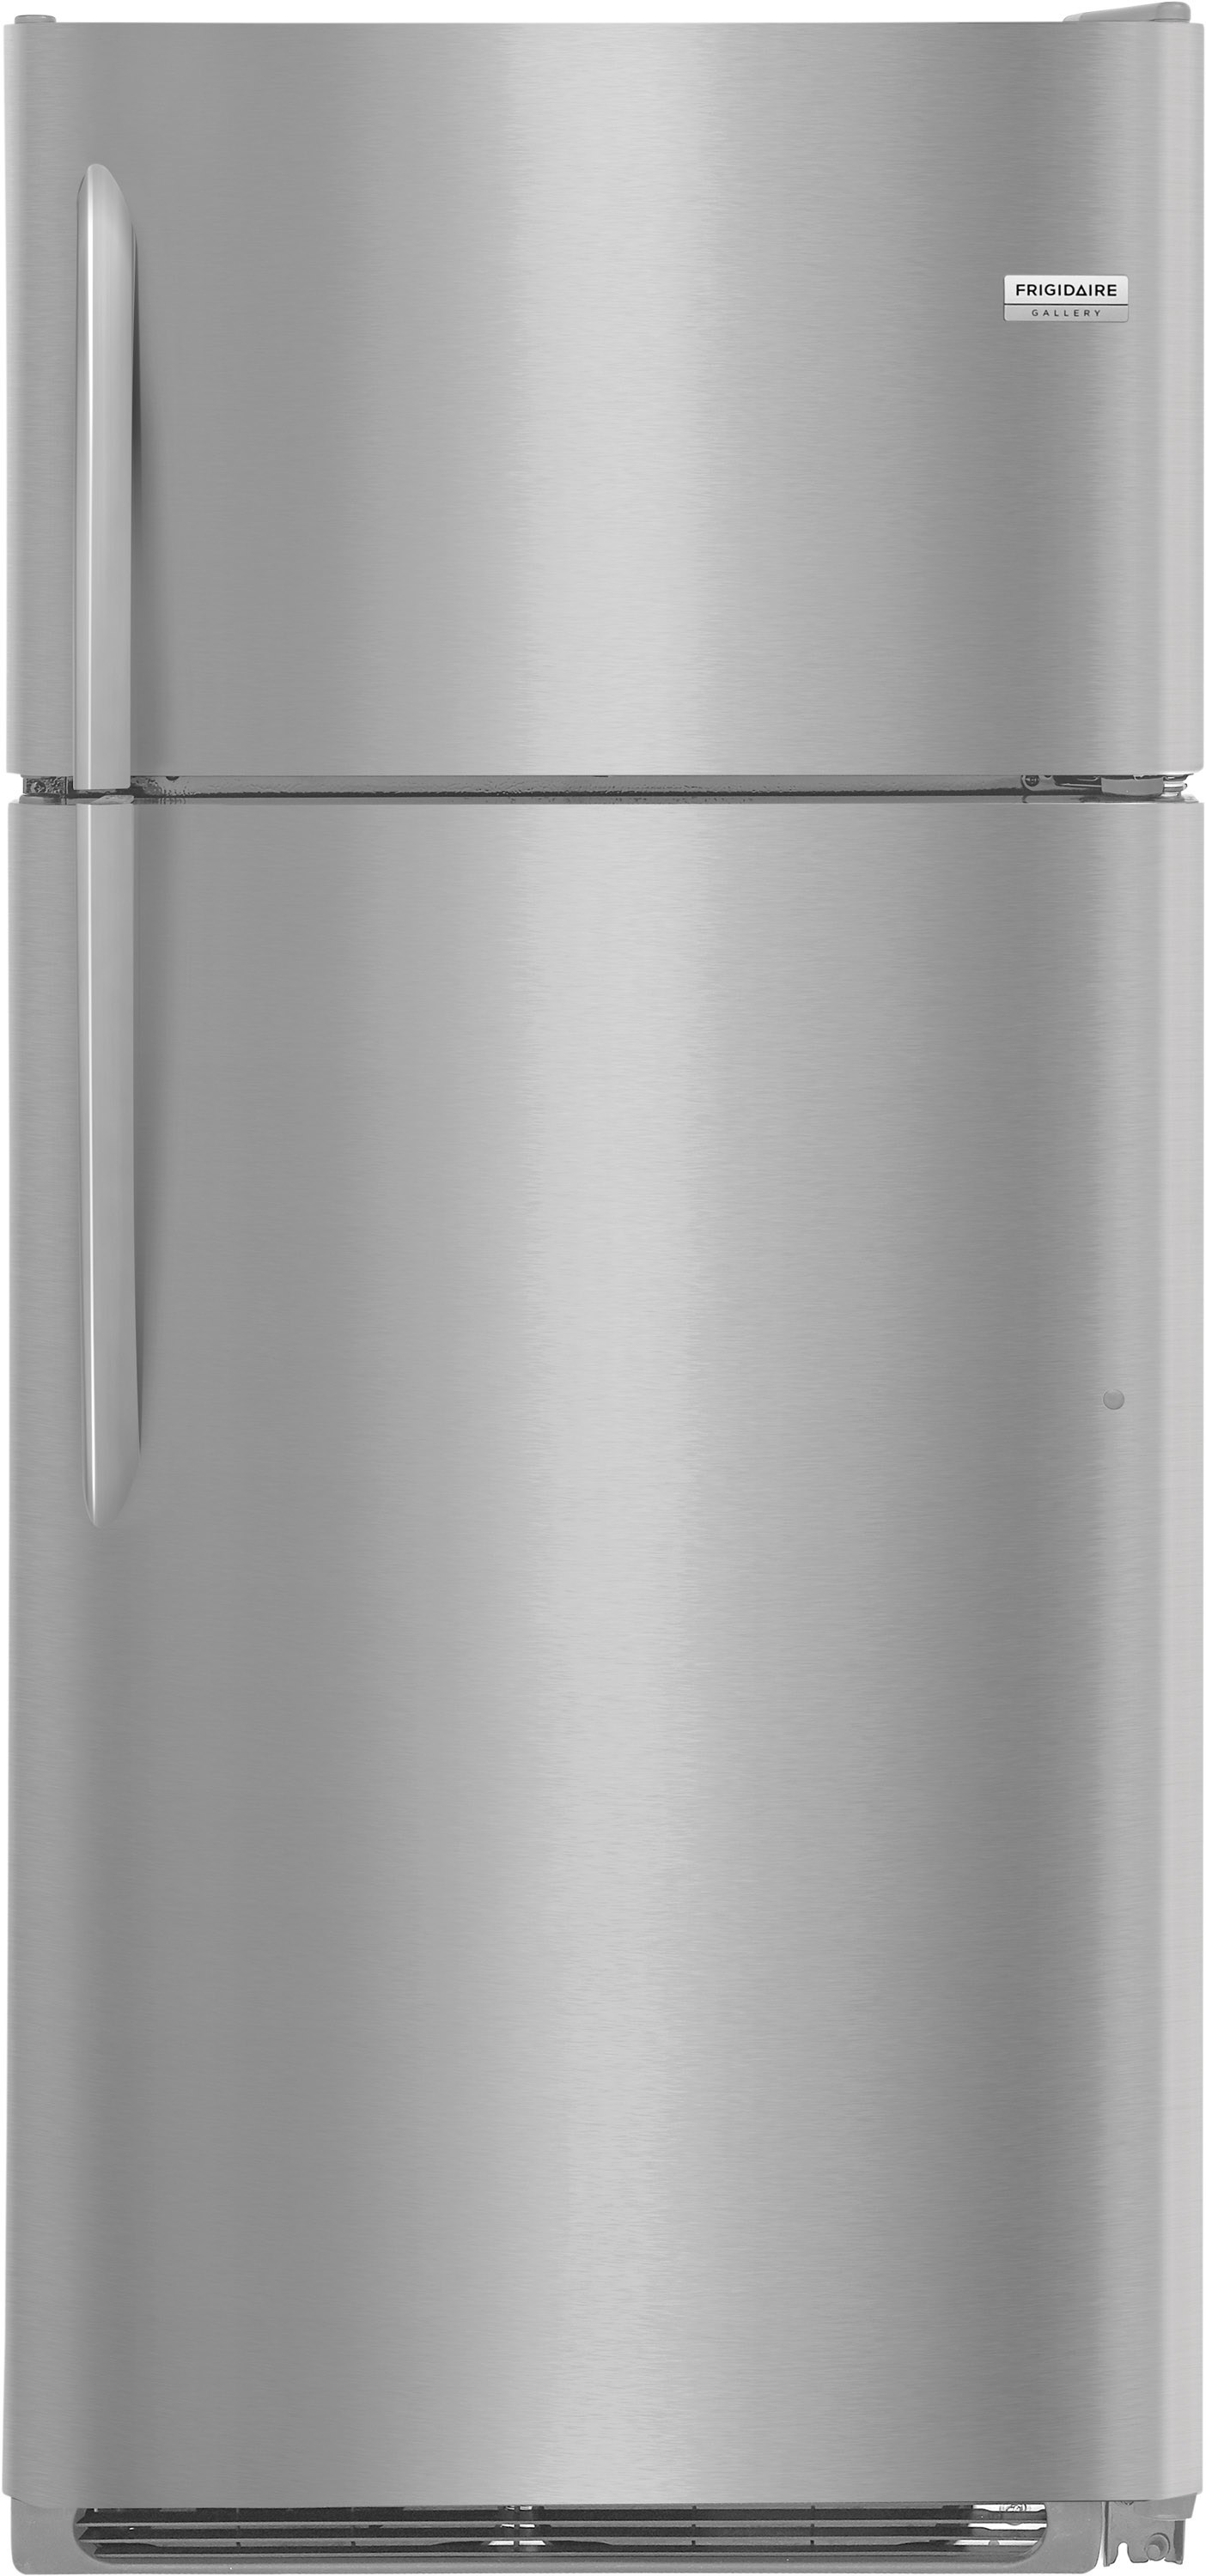 18.2 Cu. Ft. Top Freezer Refrigerator